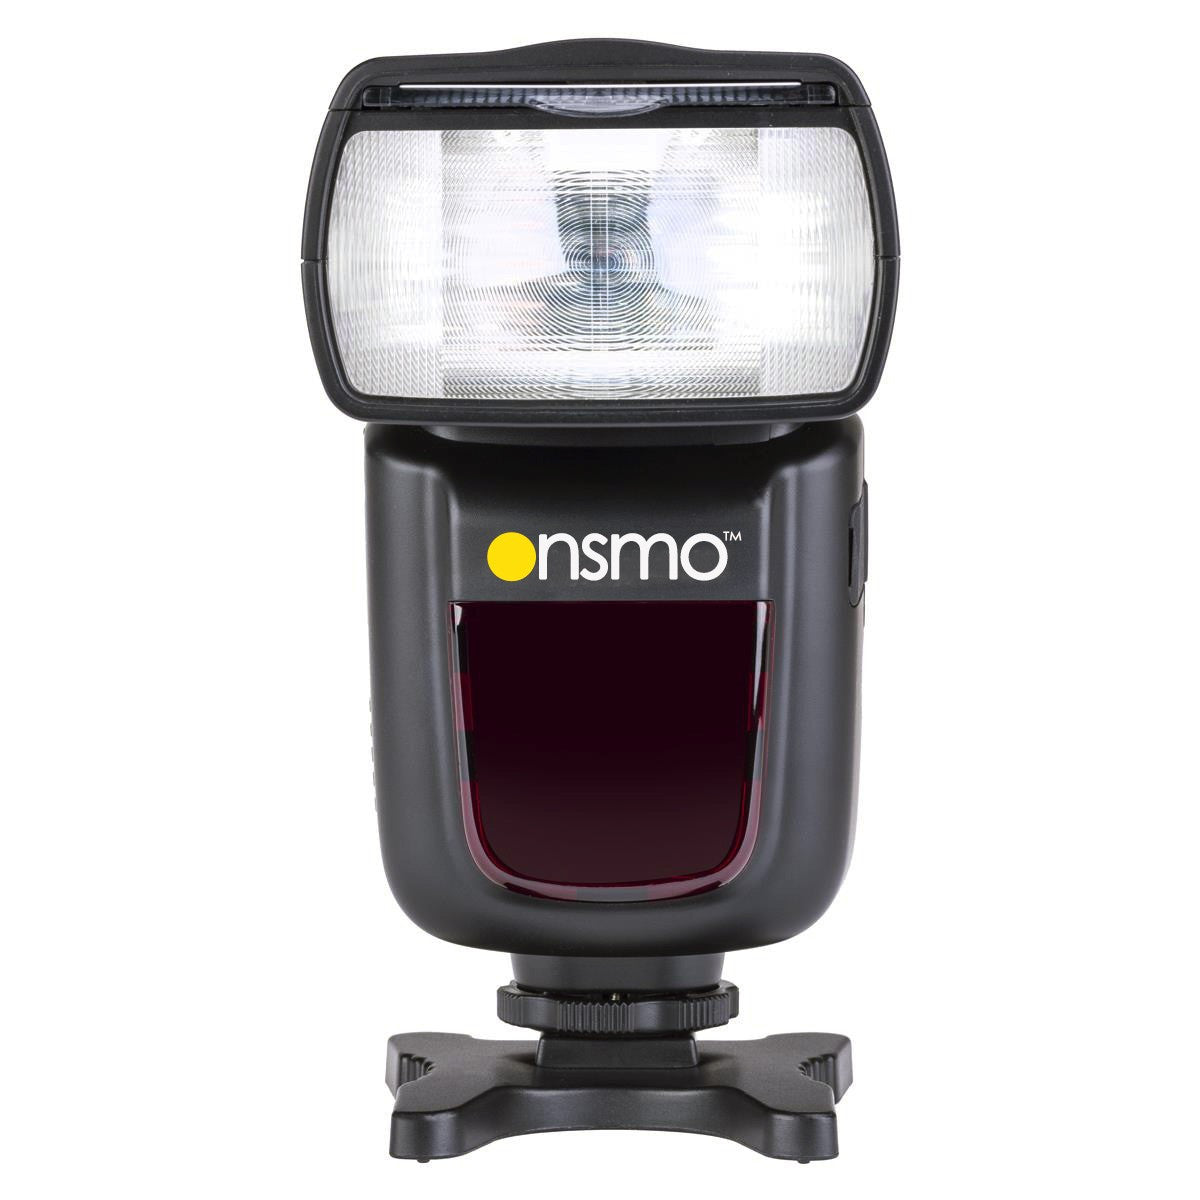 Onsmo LX800 Speedlight ( Manual ) Combo B ( 2 x LX800 + 1 x Speed X Trigger )